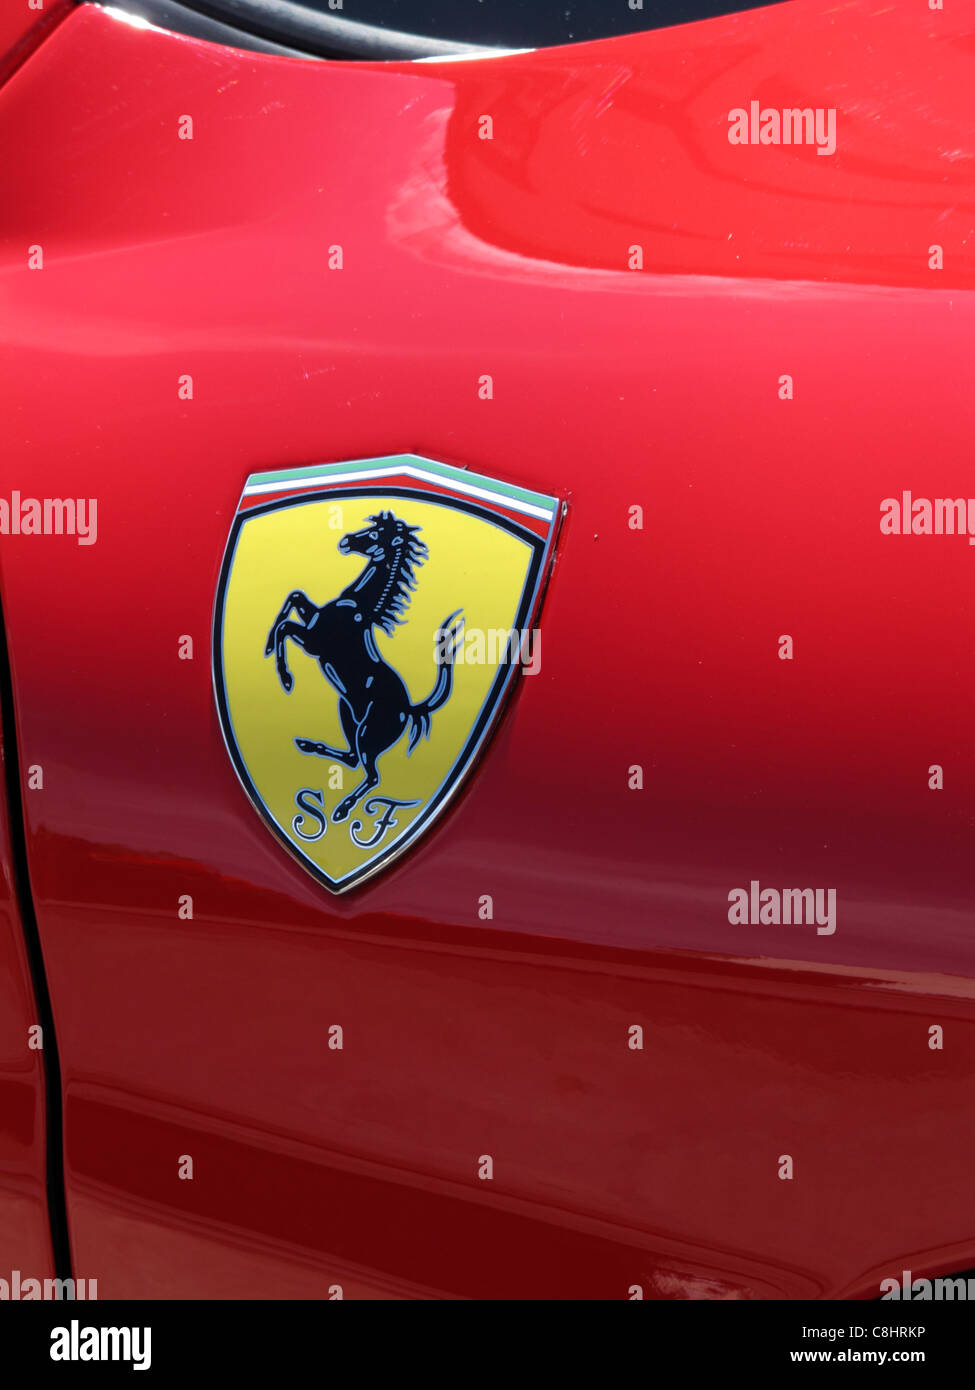 Ferrari Logo Badge On A Luxury Red Sports Car Conway North Wales Uk